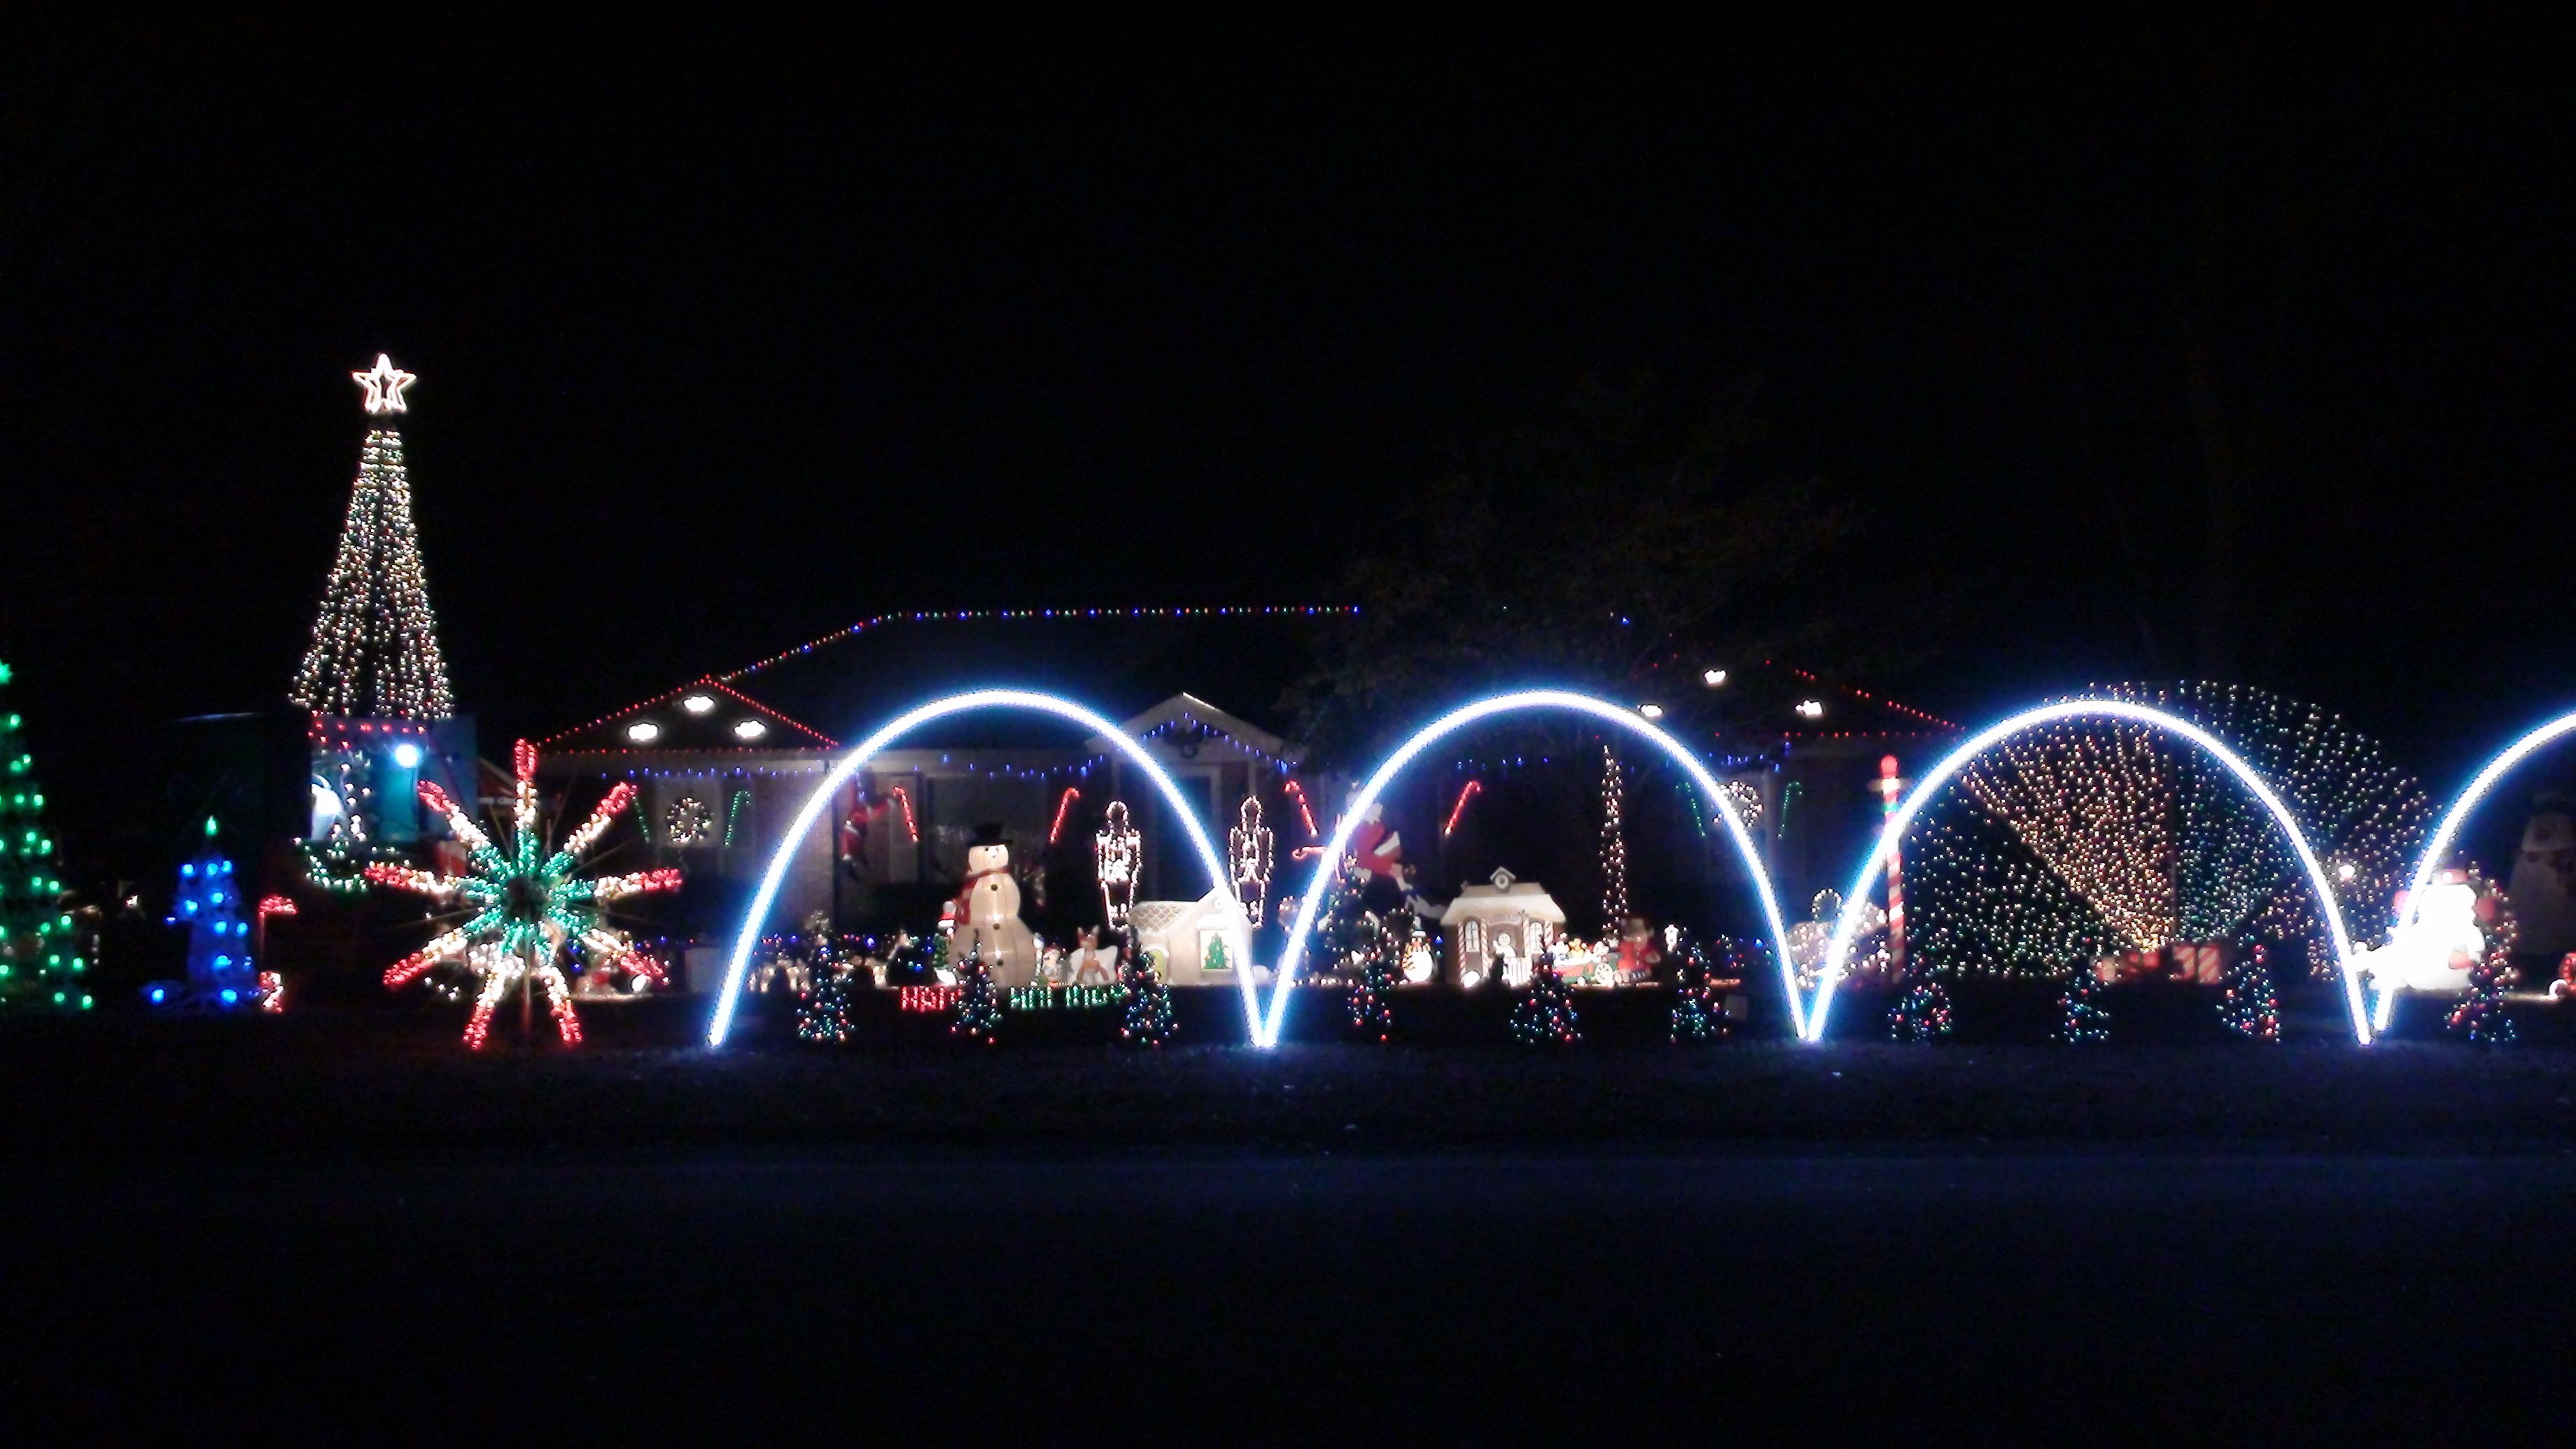 Outdoor Christmas Leaping Arches Made Of Pvc Each Wrapped